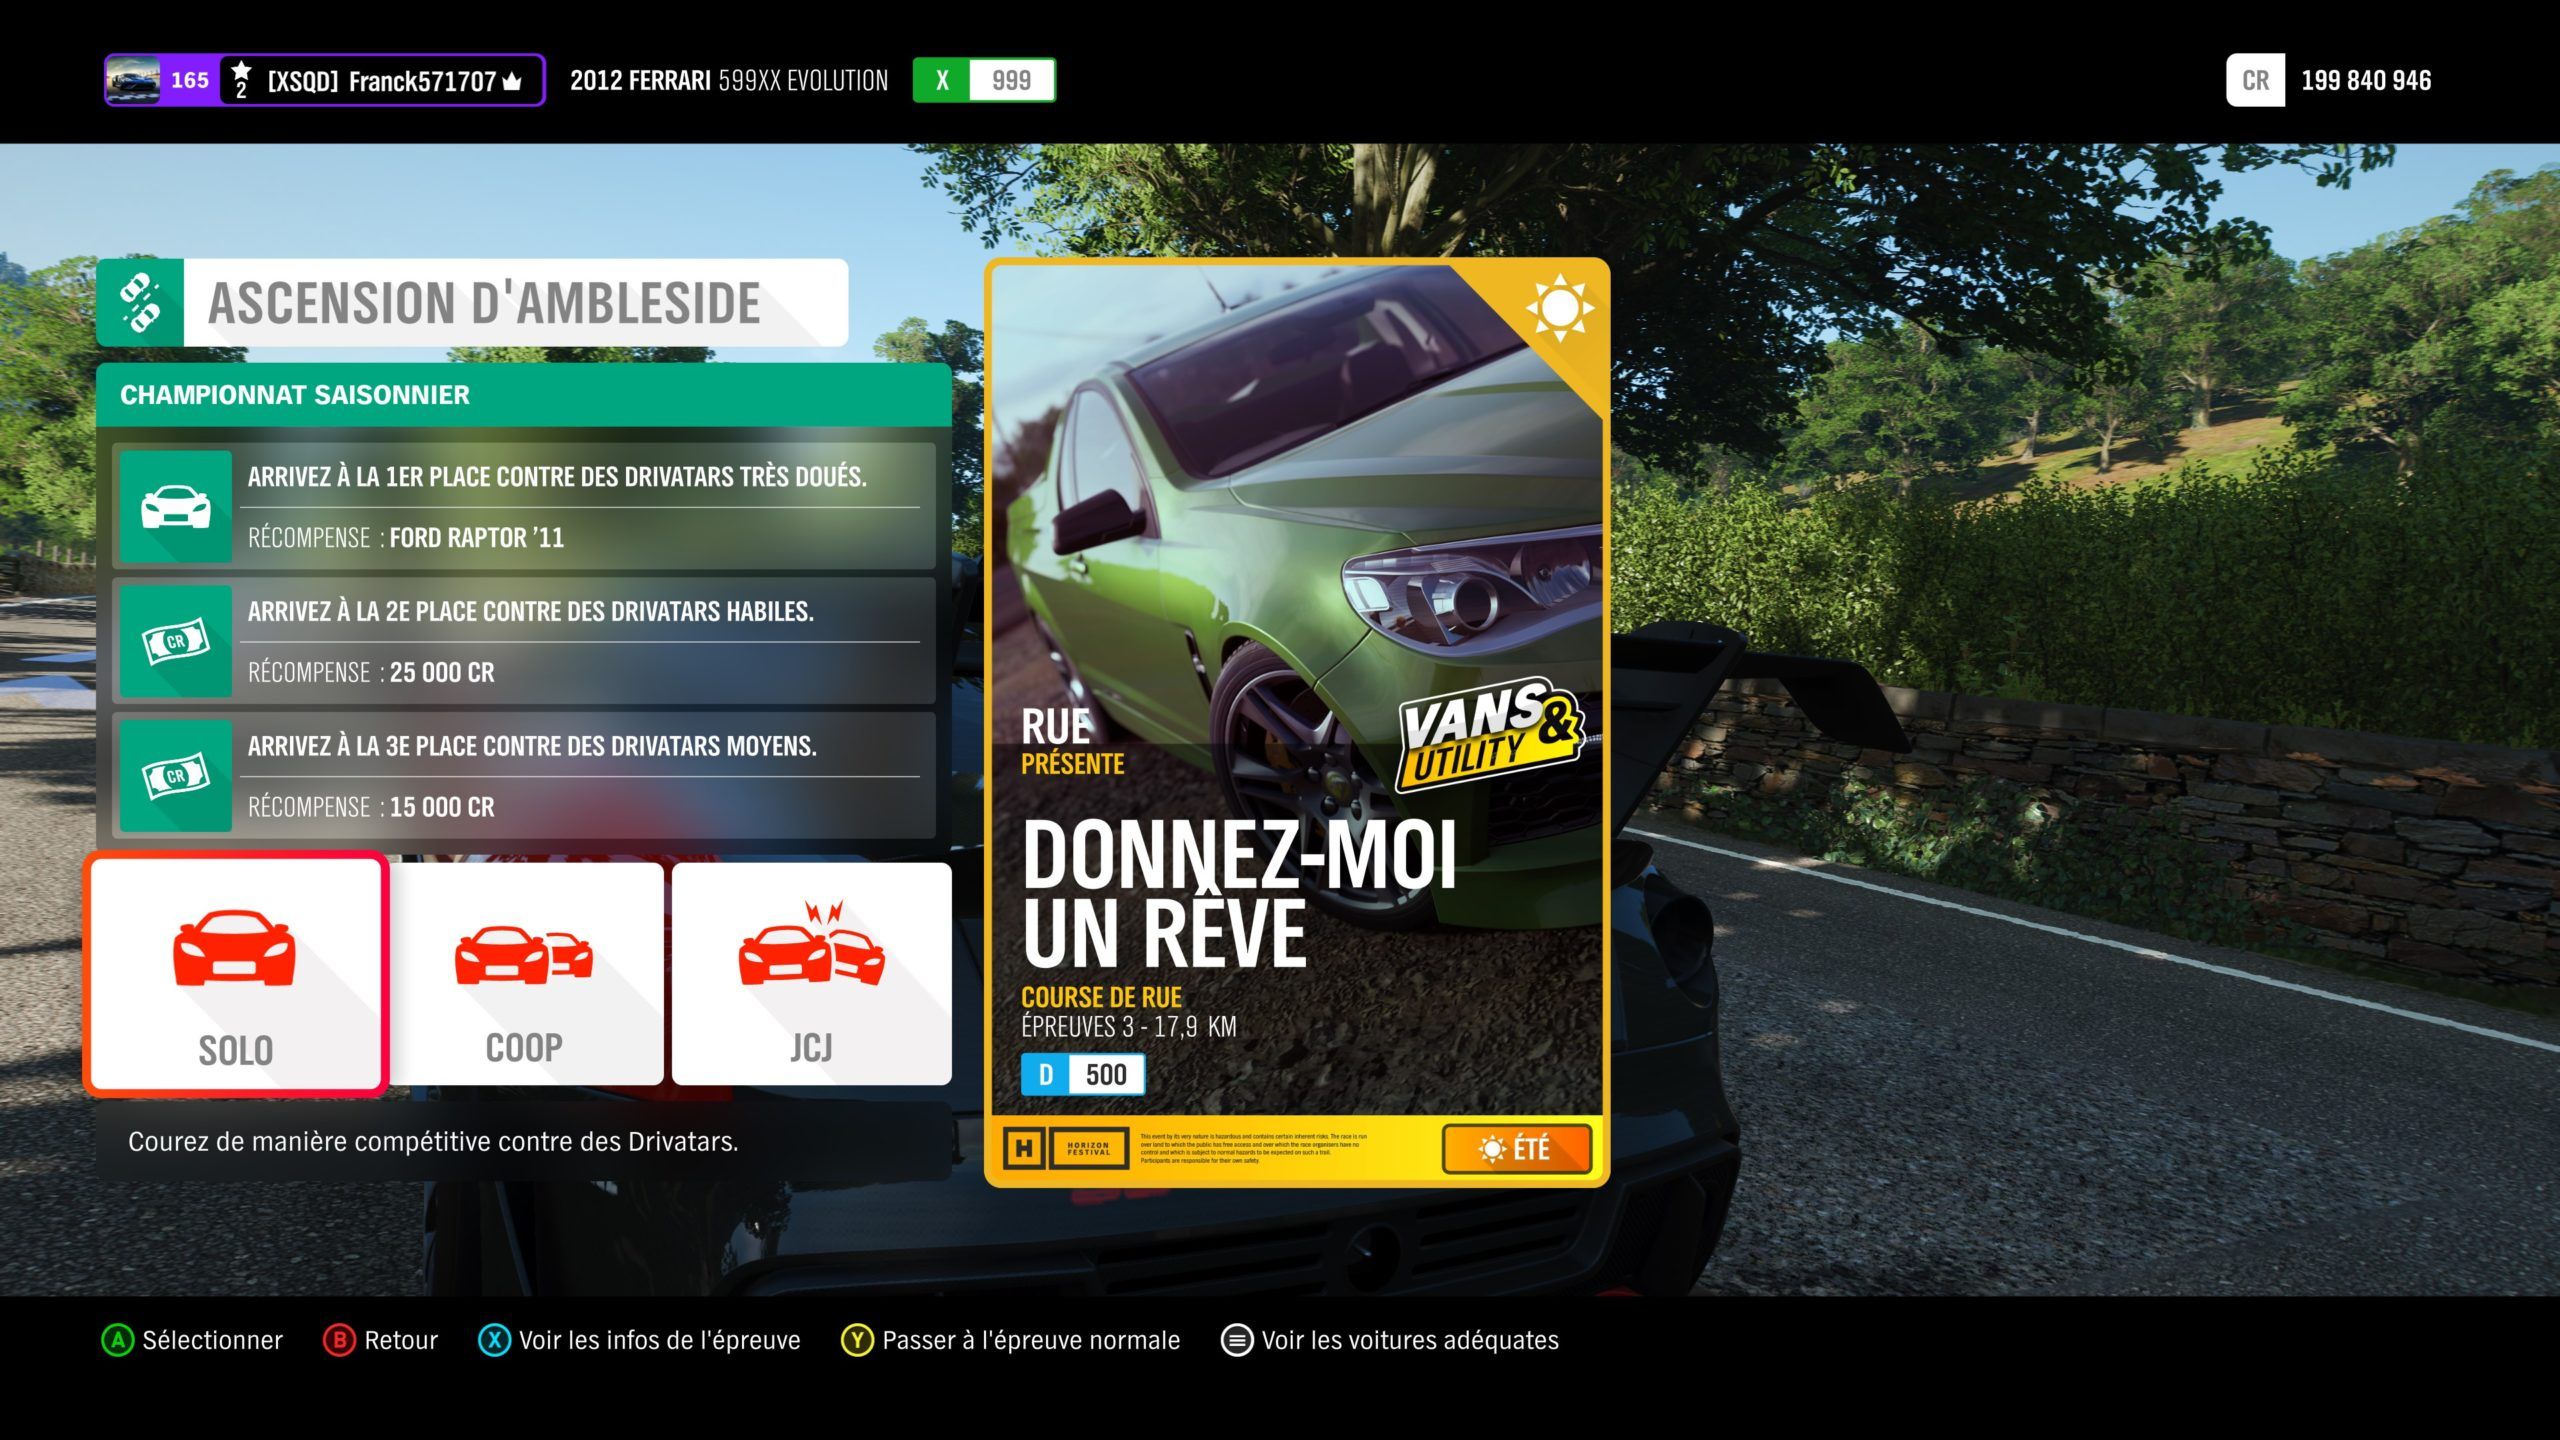 Forza-Horizon-4-Sélection-Festival-Horizon-49-Ete-08-04-2021-15-04-2021-10